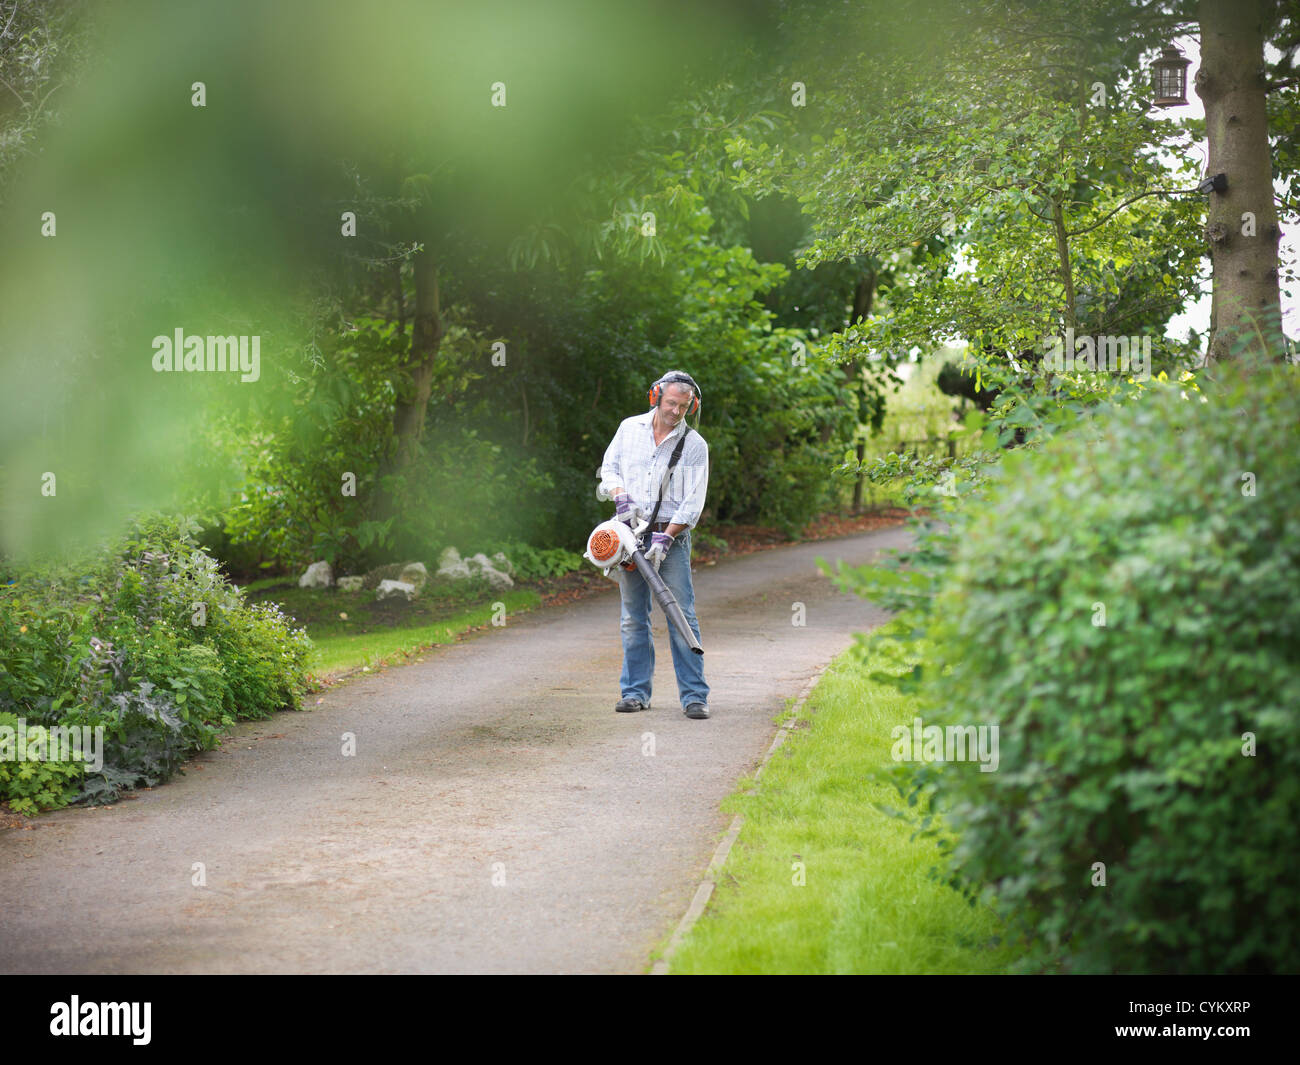 Man blowing leaves on paved road - Stock Image